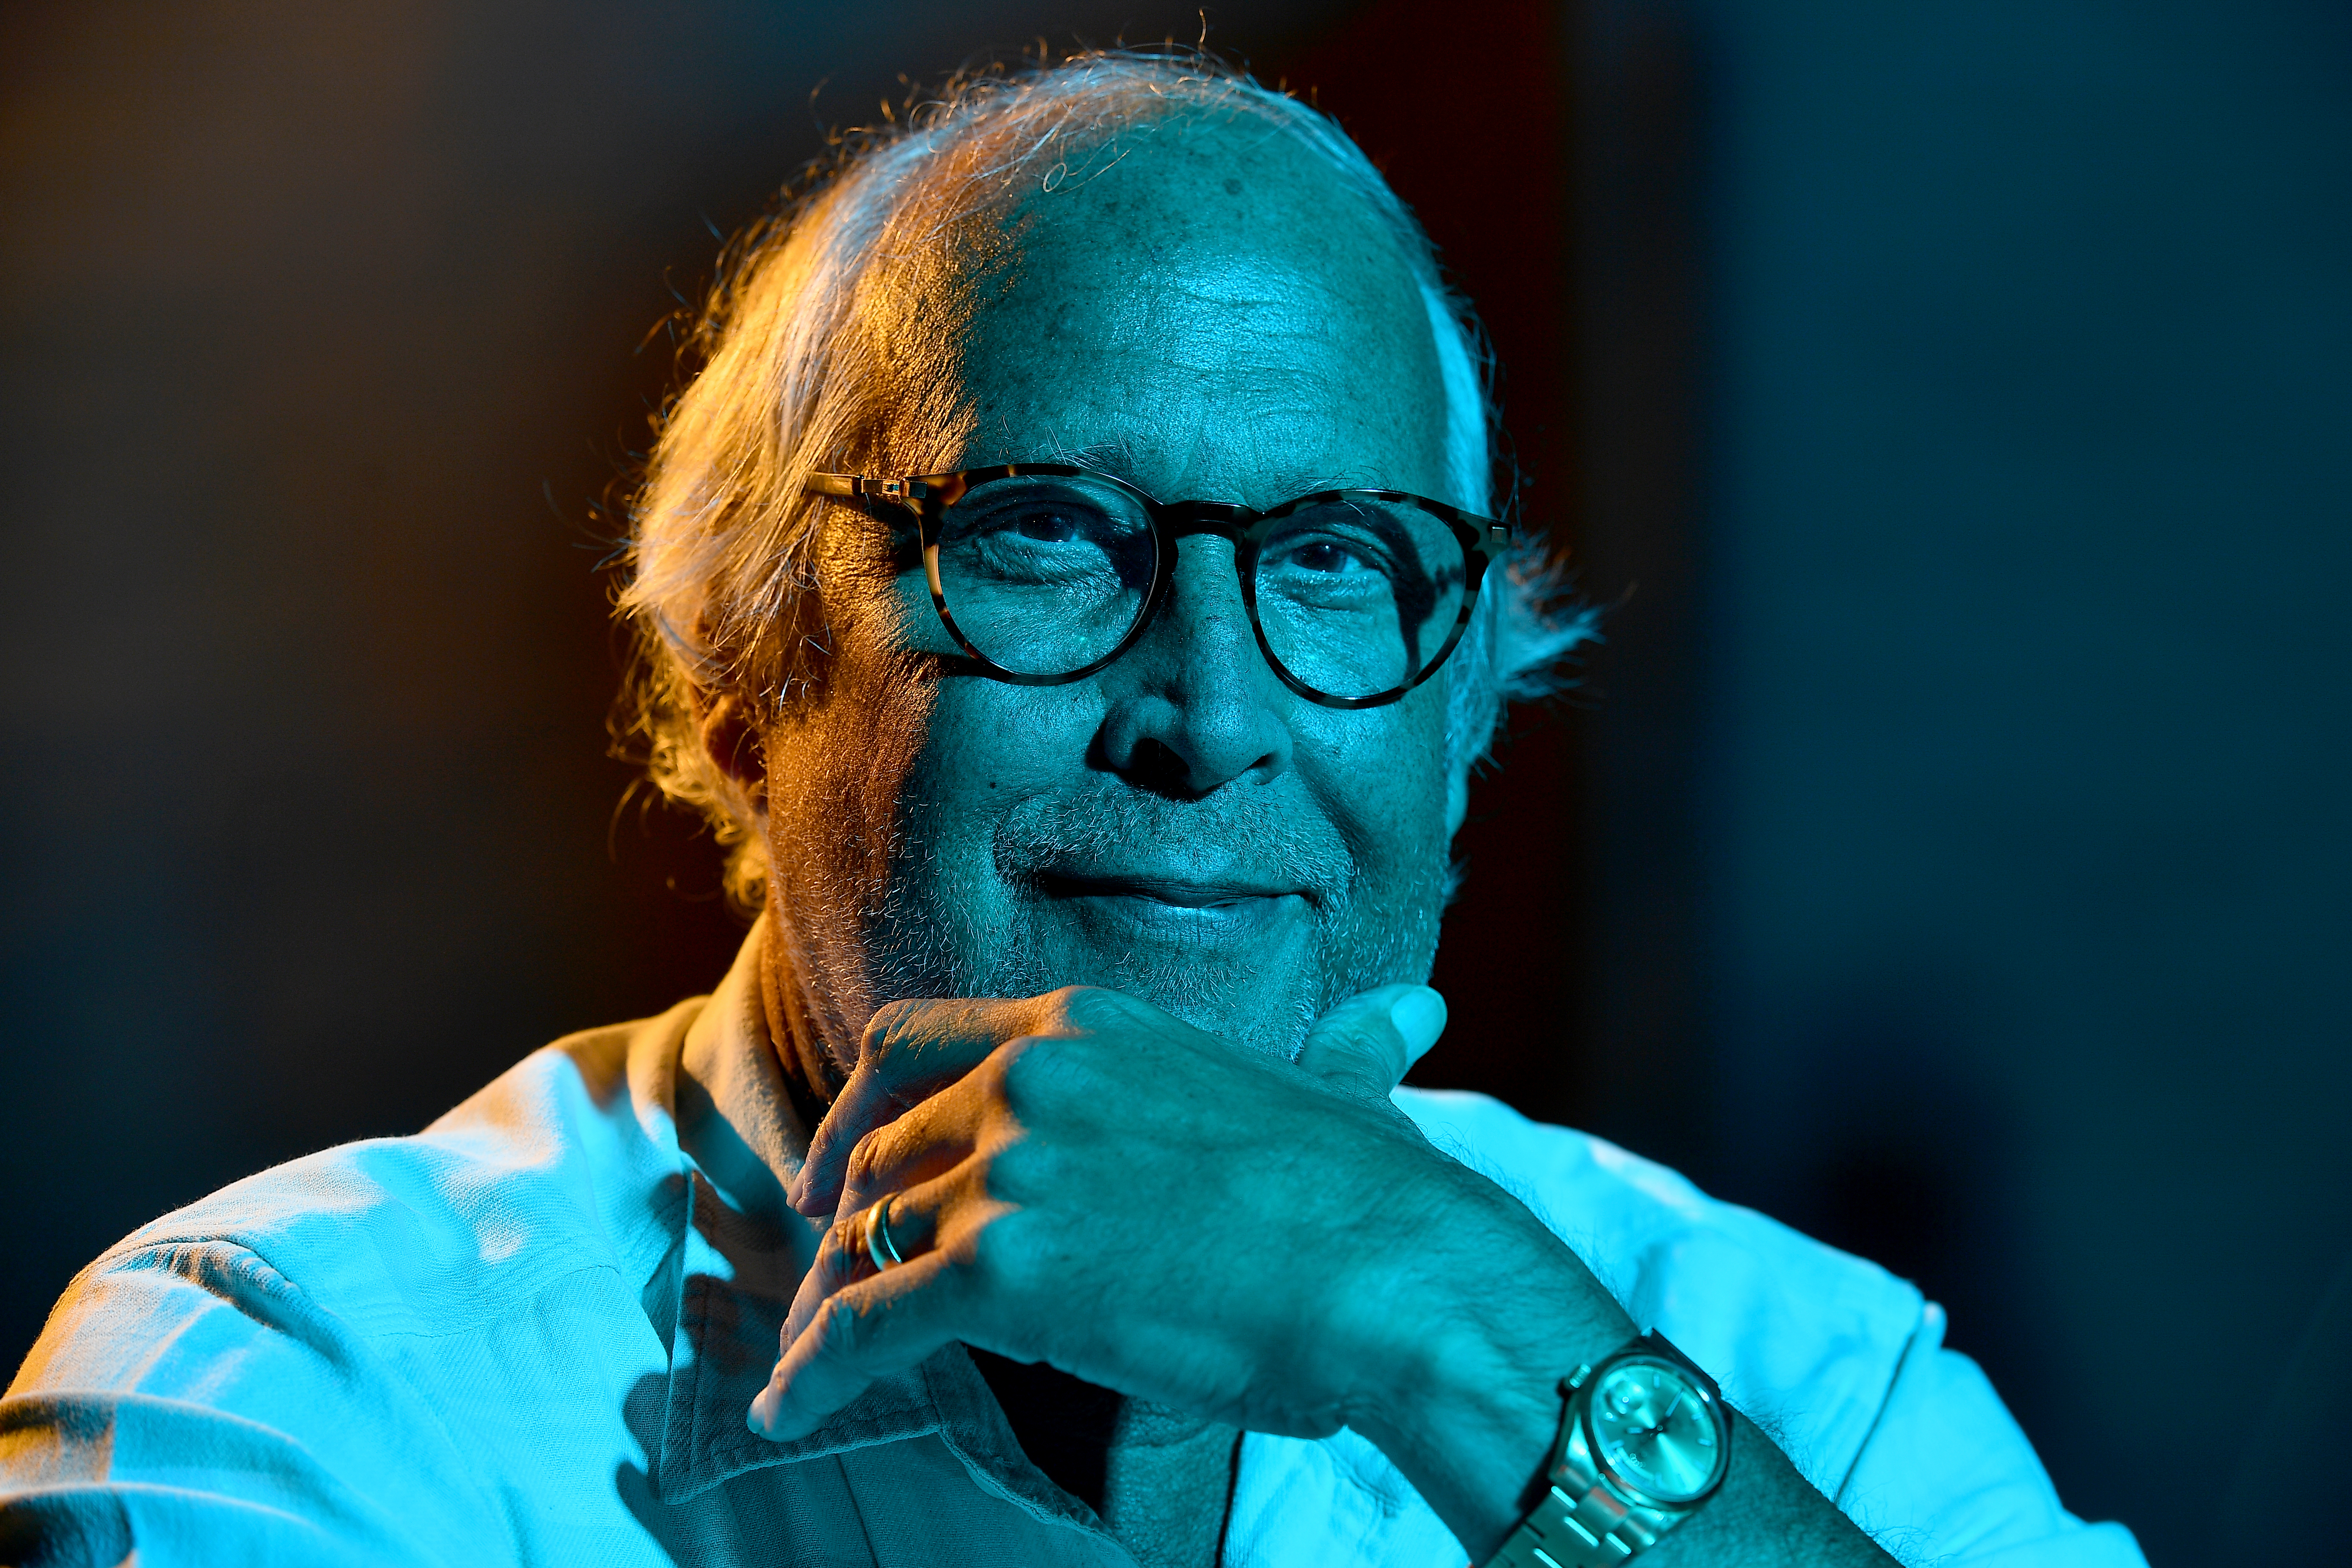 Chevy Chase on Sept. 7, 2018, in Bedford, New York. MUST CREDIT: Washington Post photo by Marvin Joseph